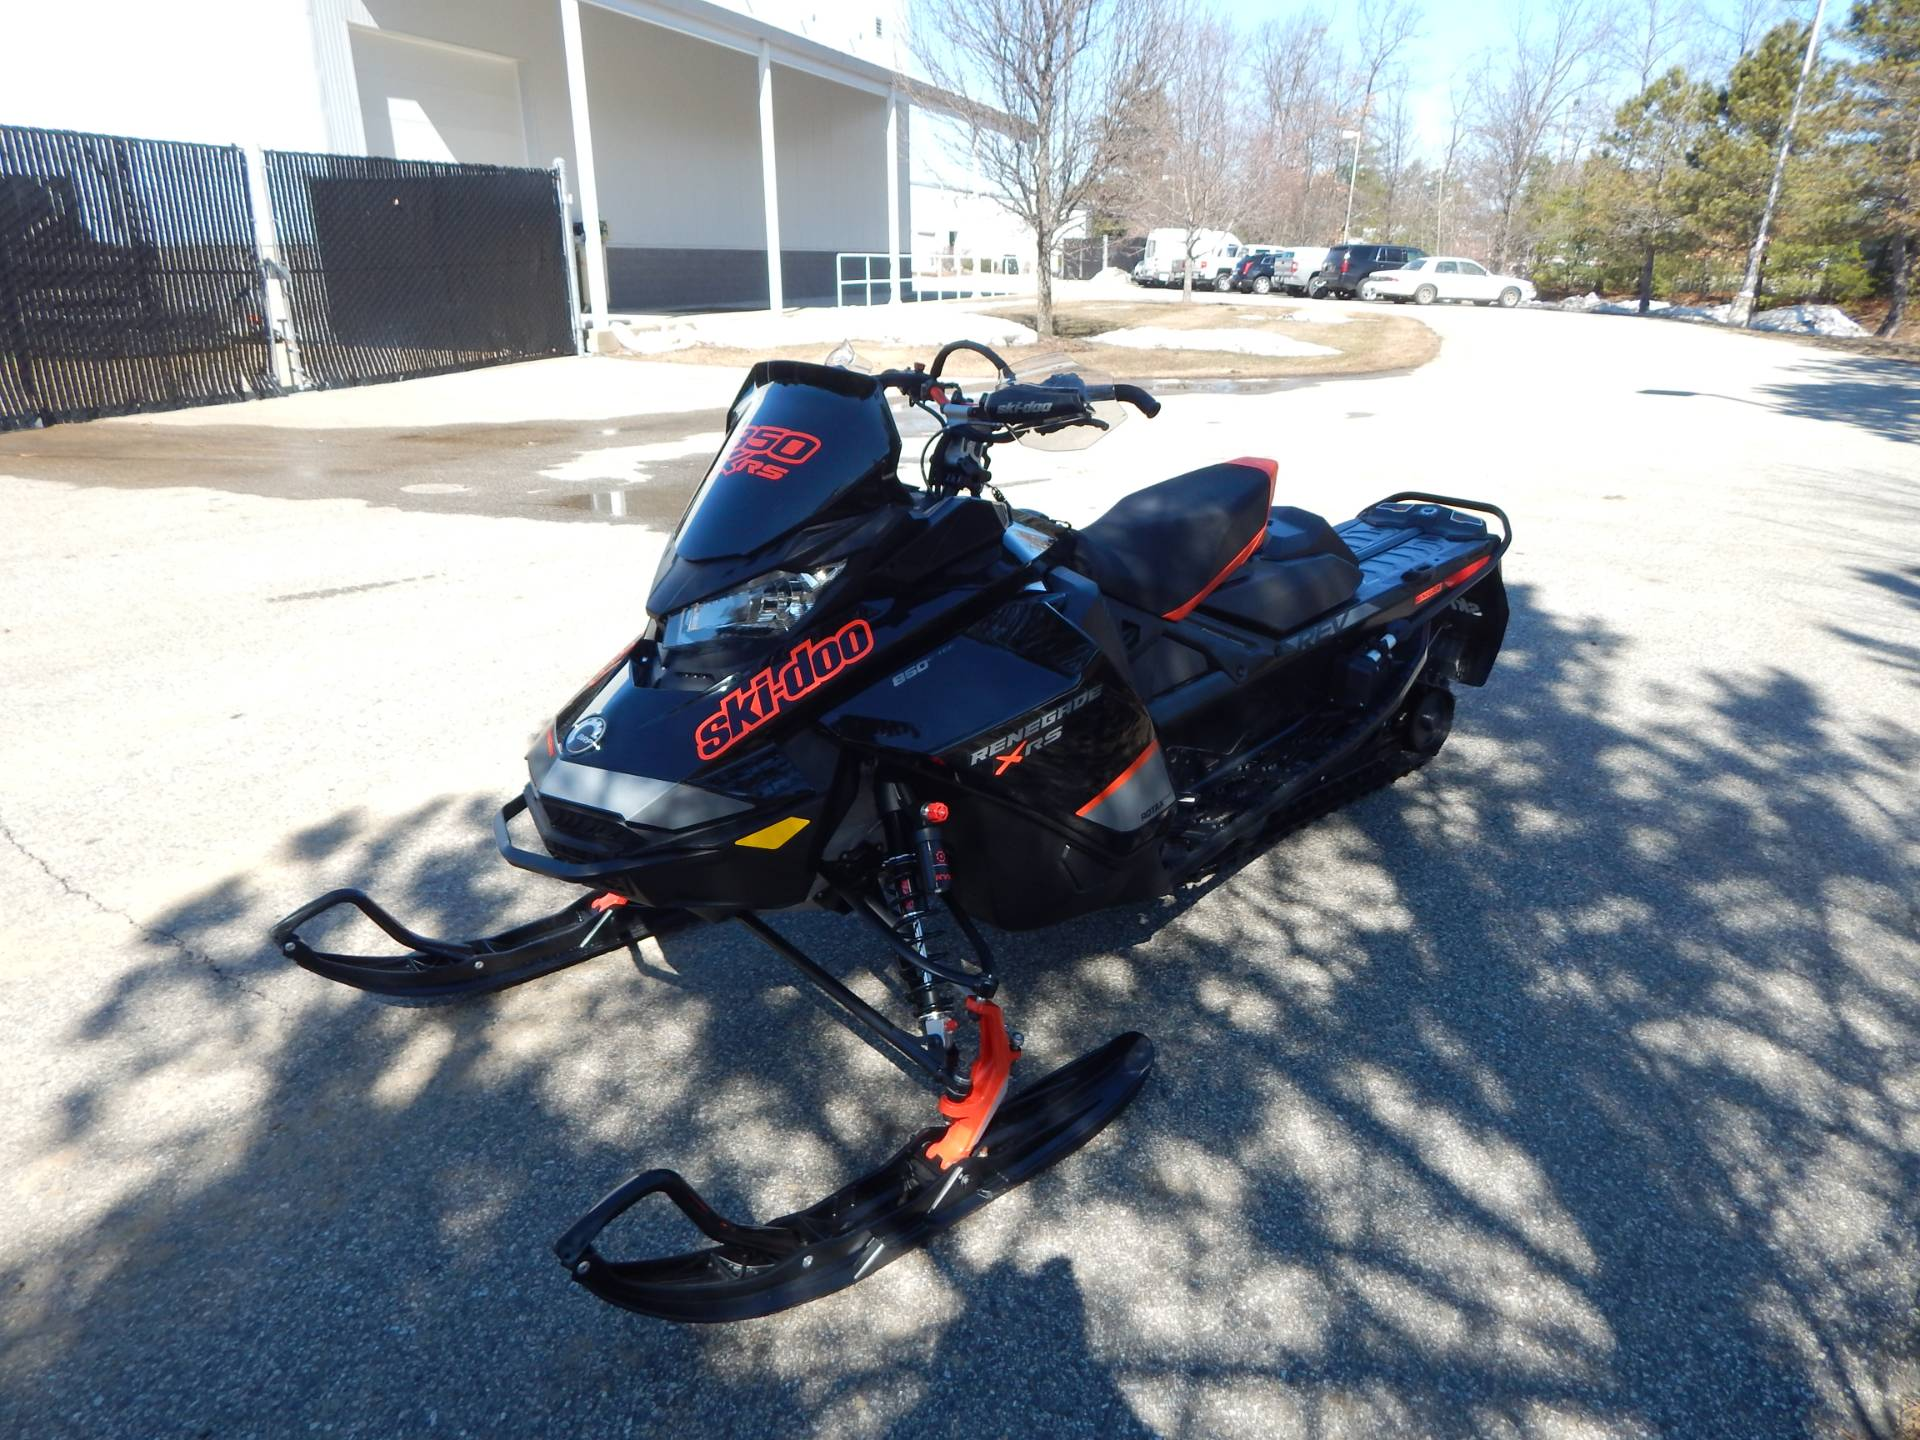 2020 Ski-Doo Renegade X-RS 850 E-Tec in Concord, New Hampshire - Photo 5